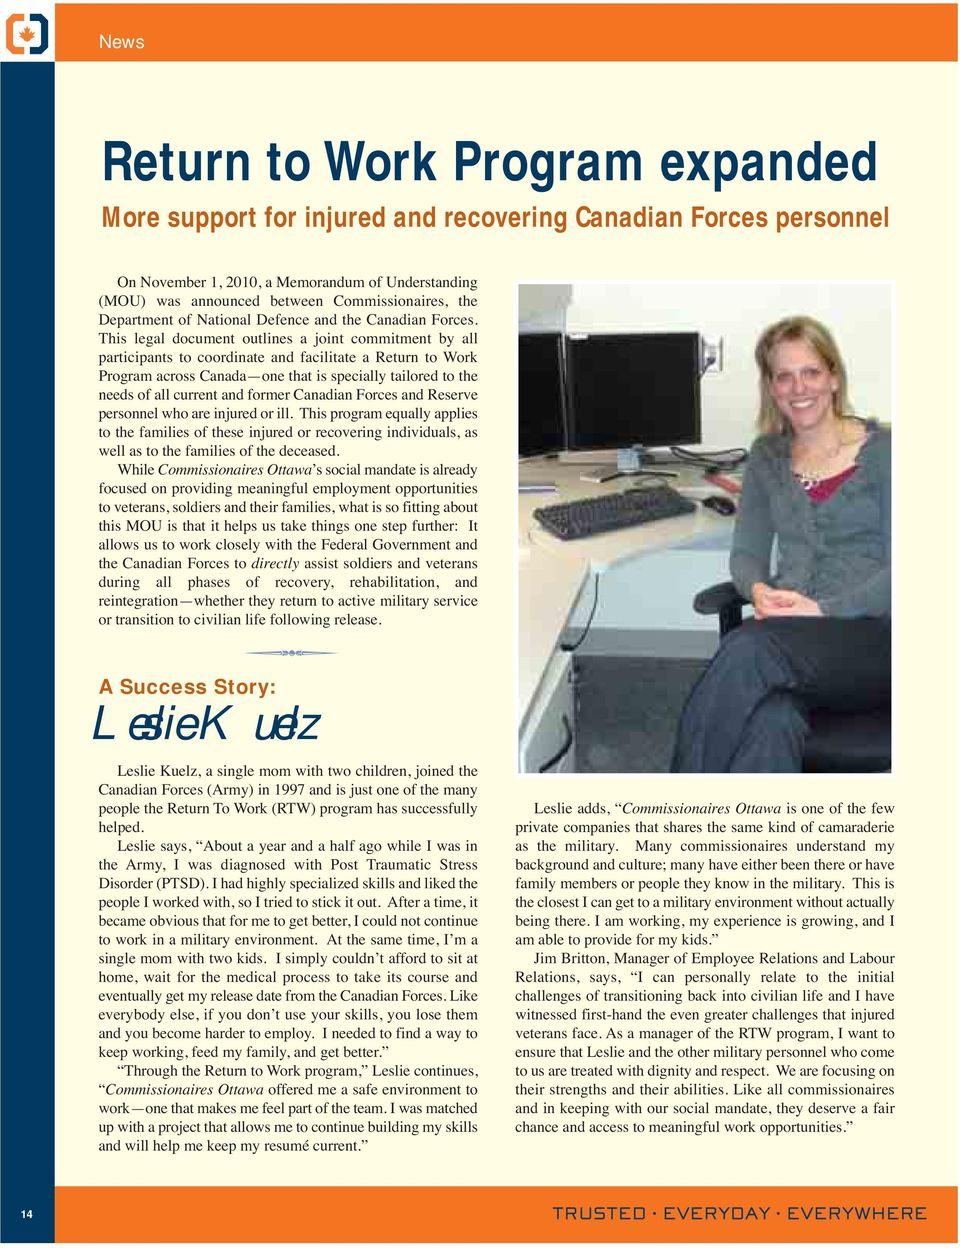 This legal document outlines a joint commitment by all participants to coordinate and facilitate a Return to Work Program across Canada one that is specially tailored to the needs of all current and